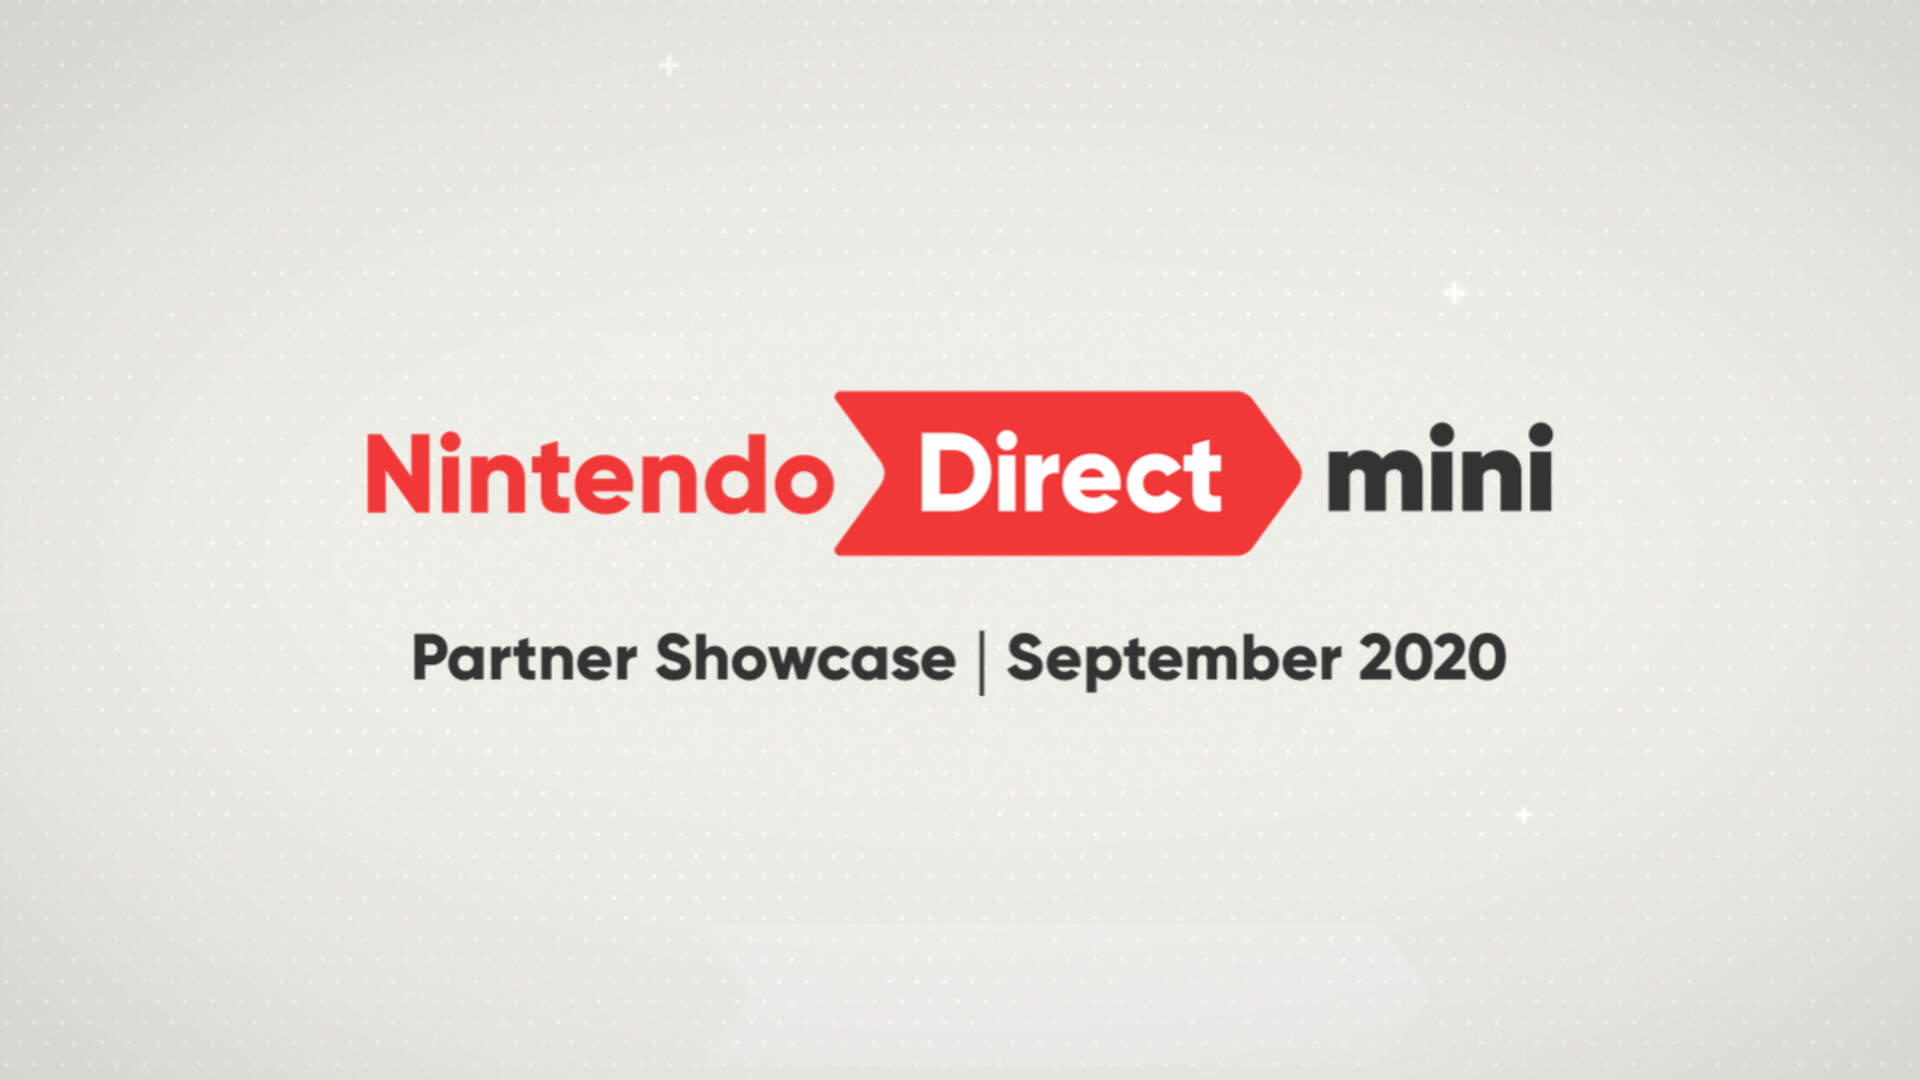 There's a New Nintendo Direct Mini Partner Showcase Airing Early Tomorrow Morning